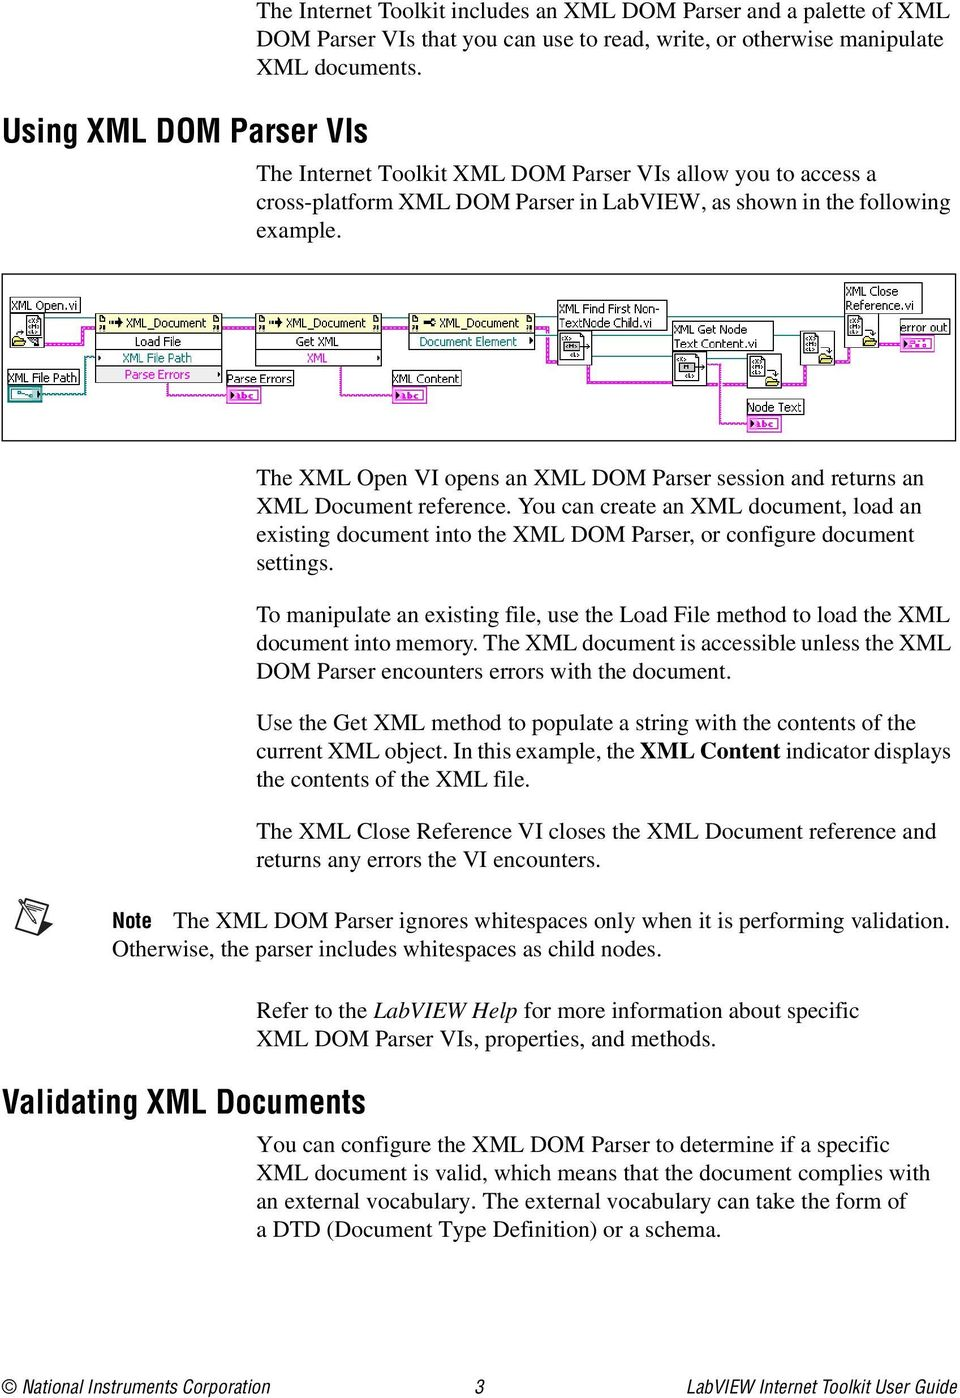 The XML Open VI opens an XML DOM Parser session and returns an XML Document reference.